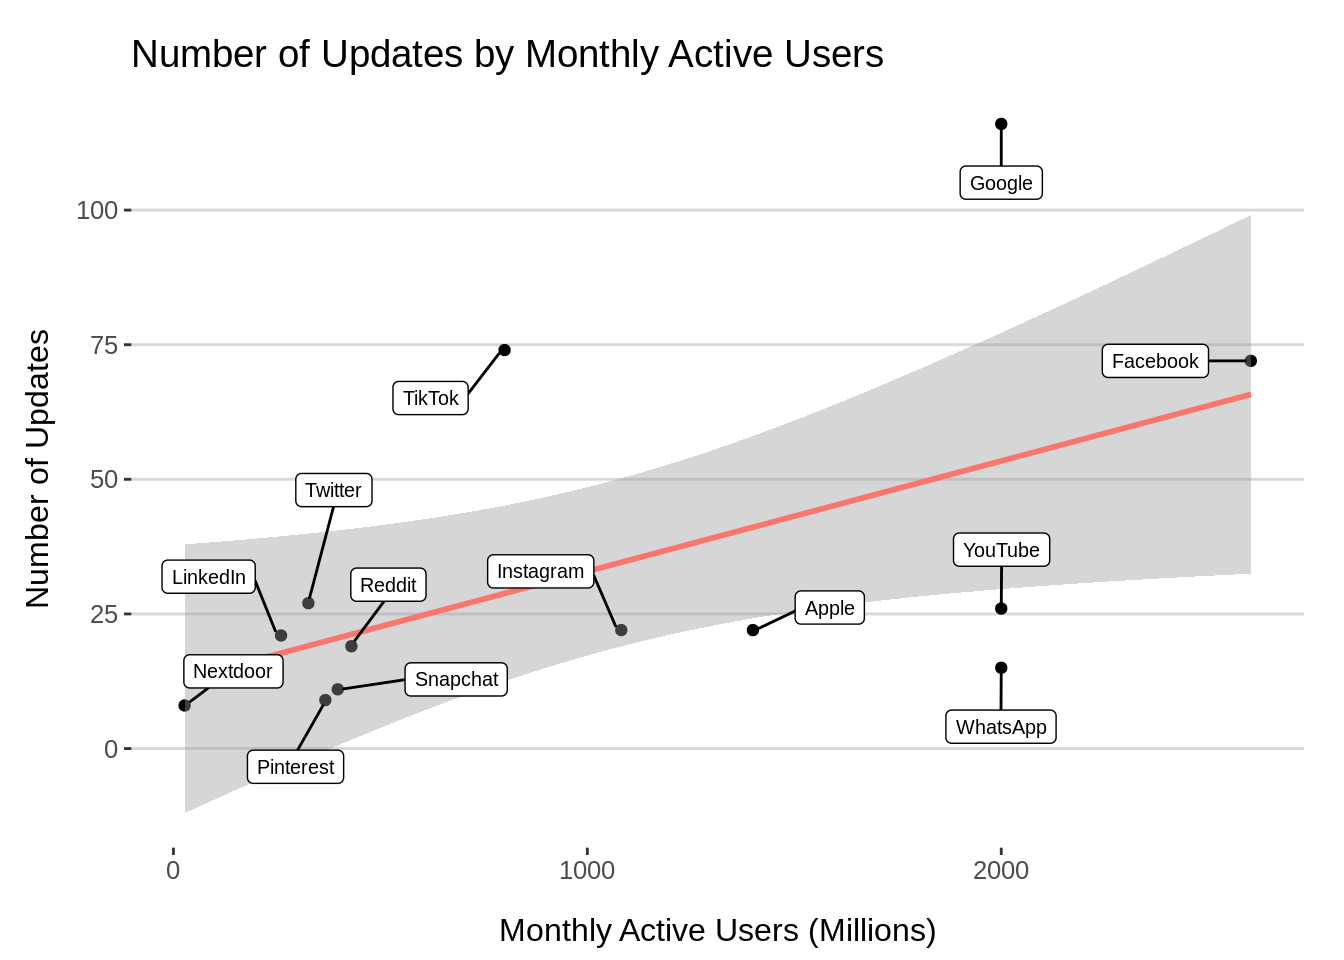 Graph showing number of updates by monthly active users